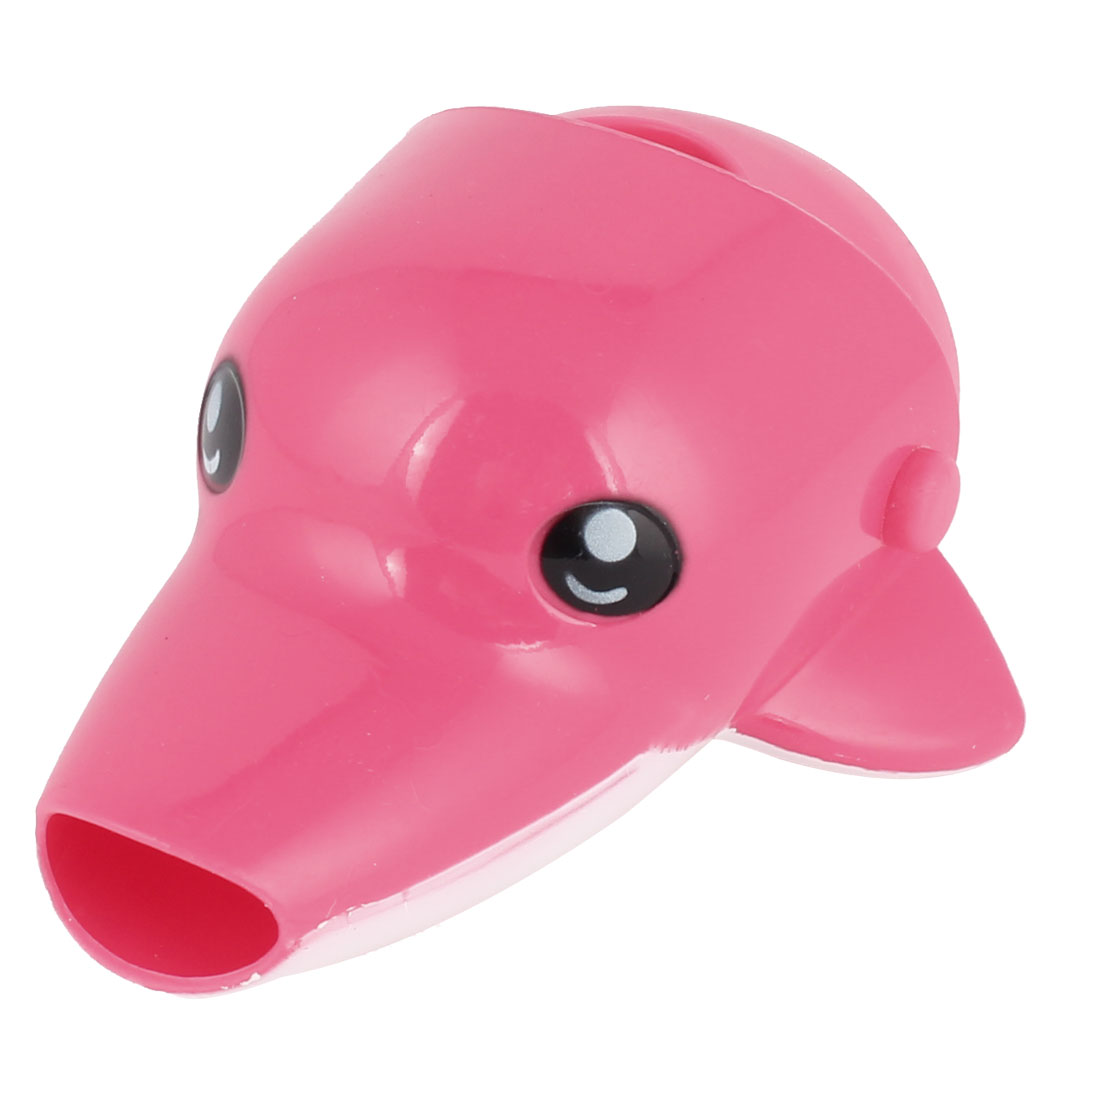 Light Pink Silicone Interface Dolphin Shaped Faucet Extender Hand Washing Tool